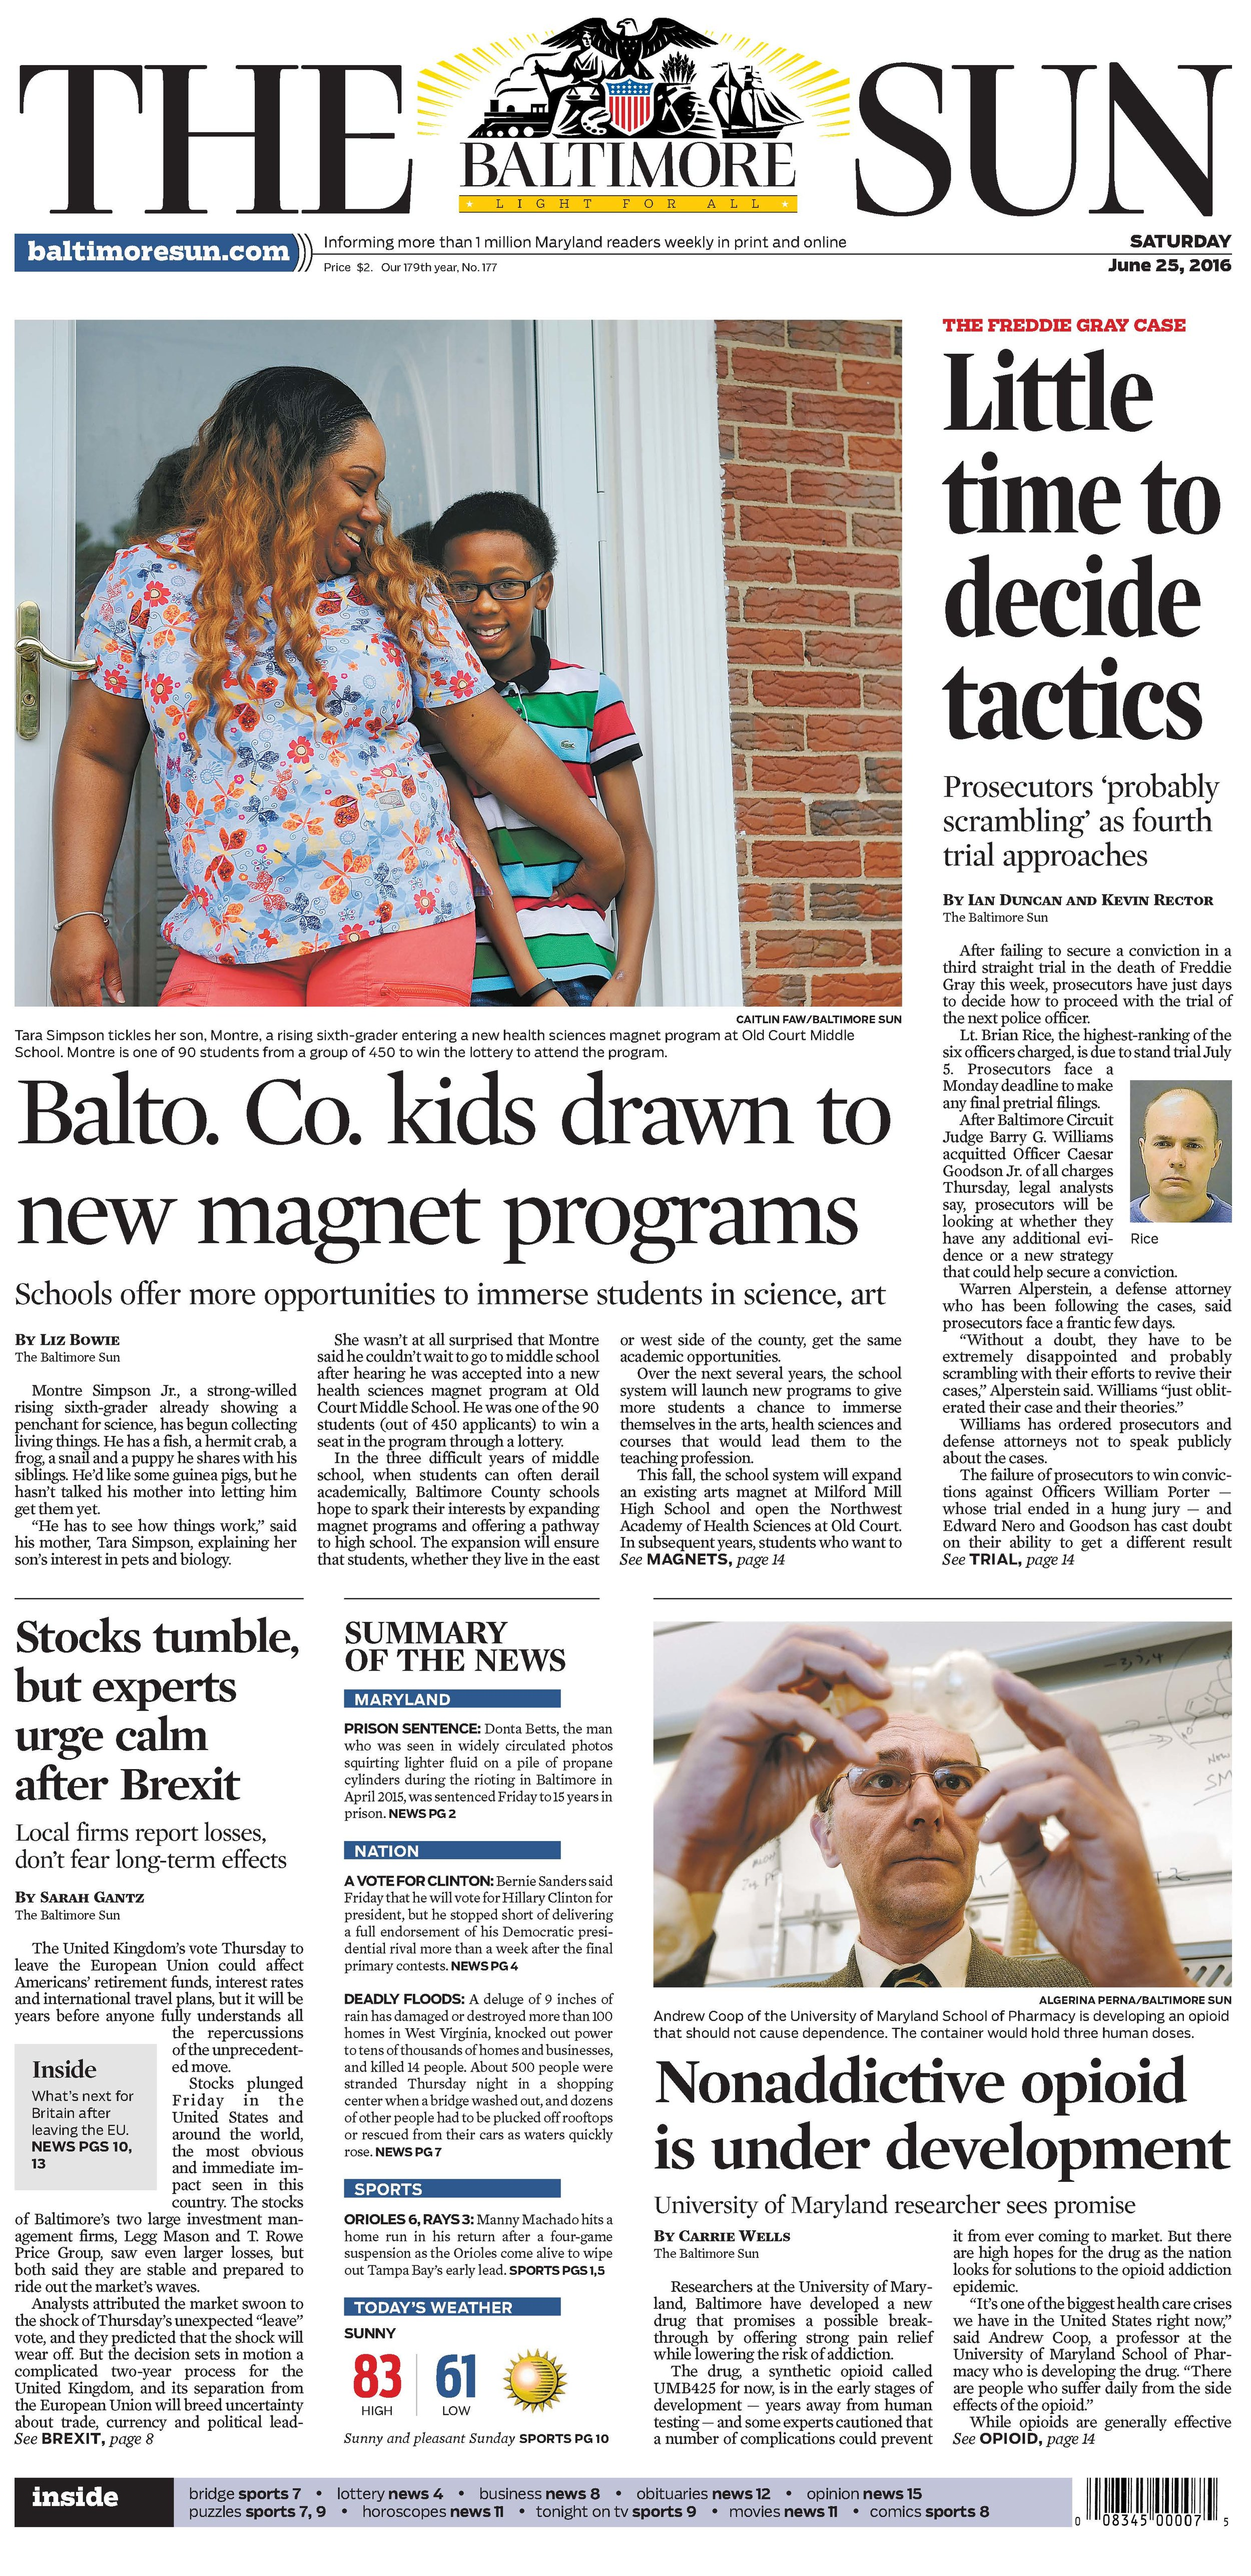 The Baltimore Sun   Saturday, June 25, 2016